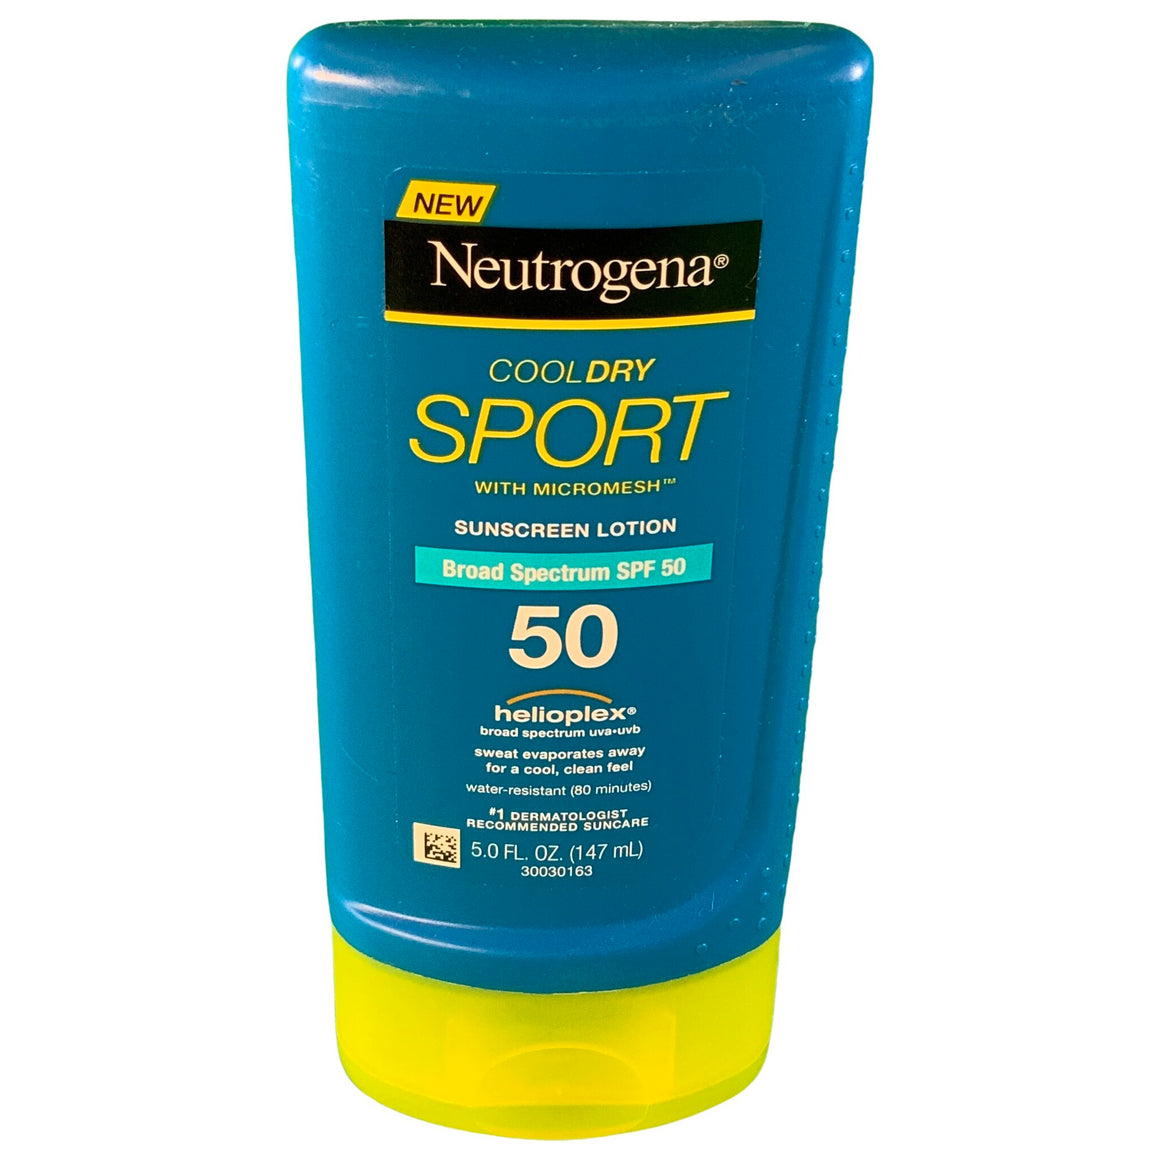 Cooldry Sport Sunscreen Lotion With Spf 50, 5 Fl. Oz - Neutrogena